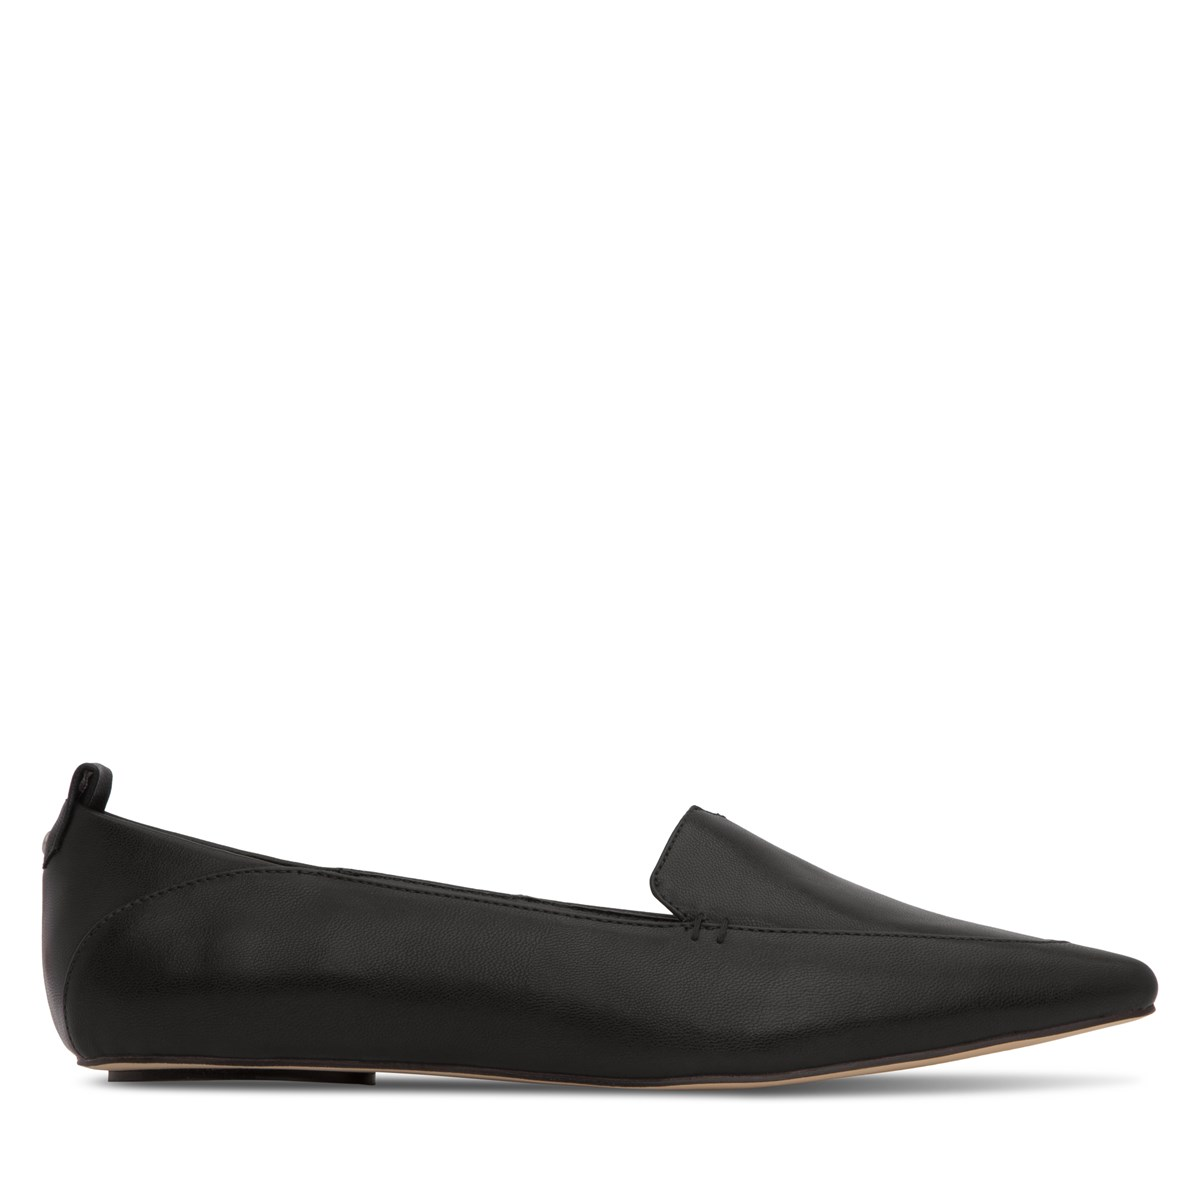 Women's Shanti Flats in Black